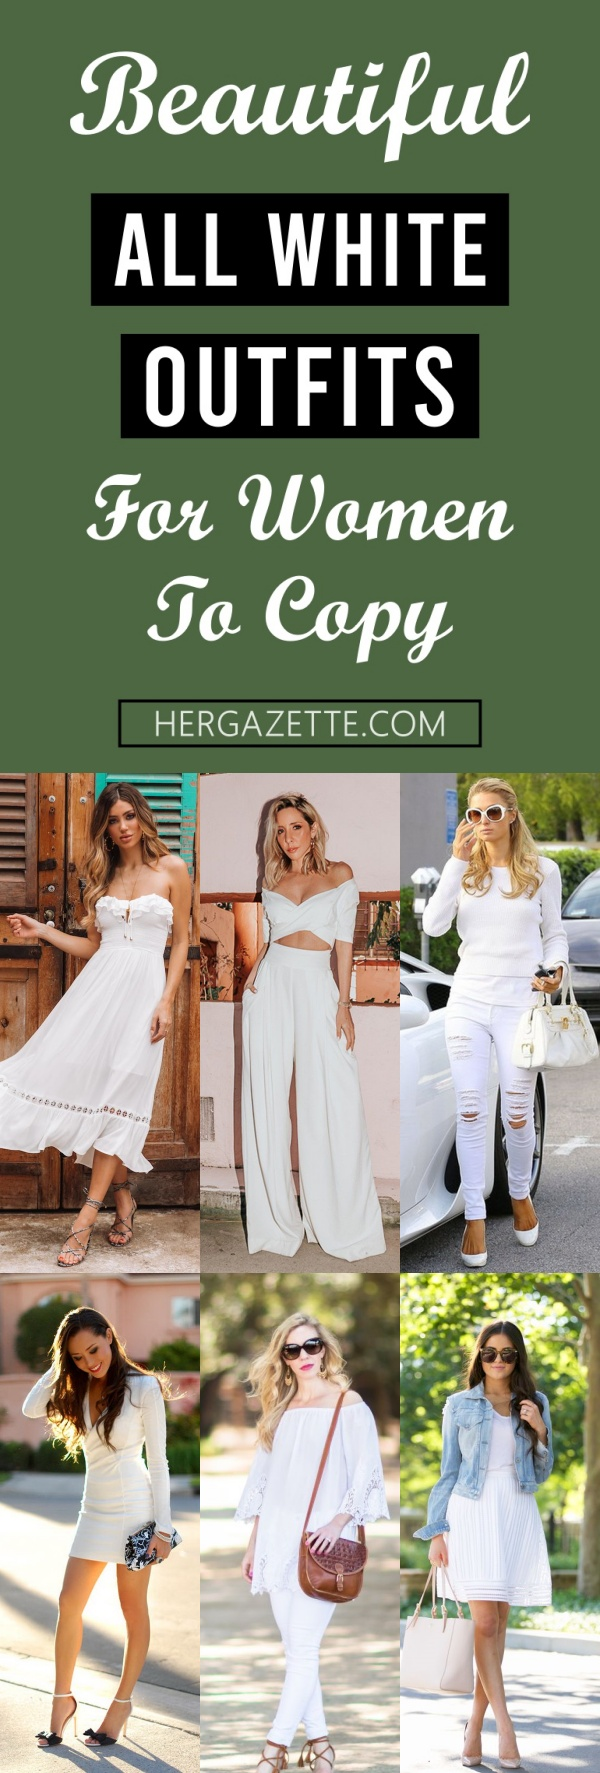 Beautiful All White Outfits For Women To Copy